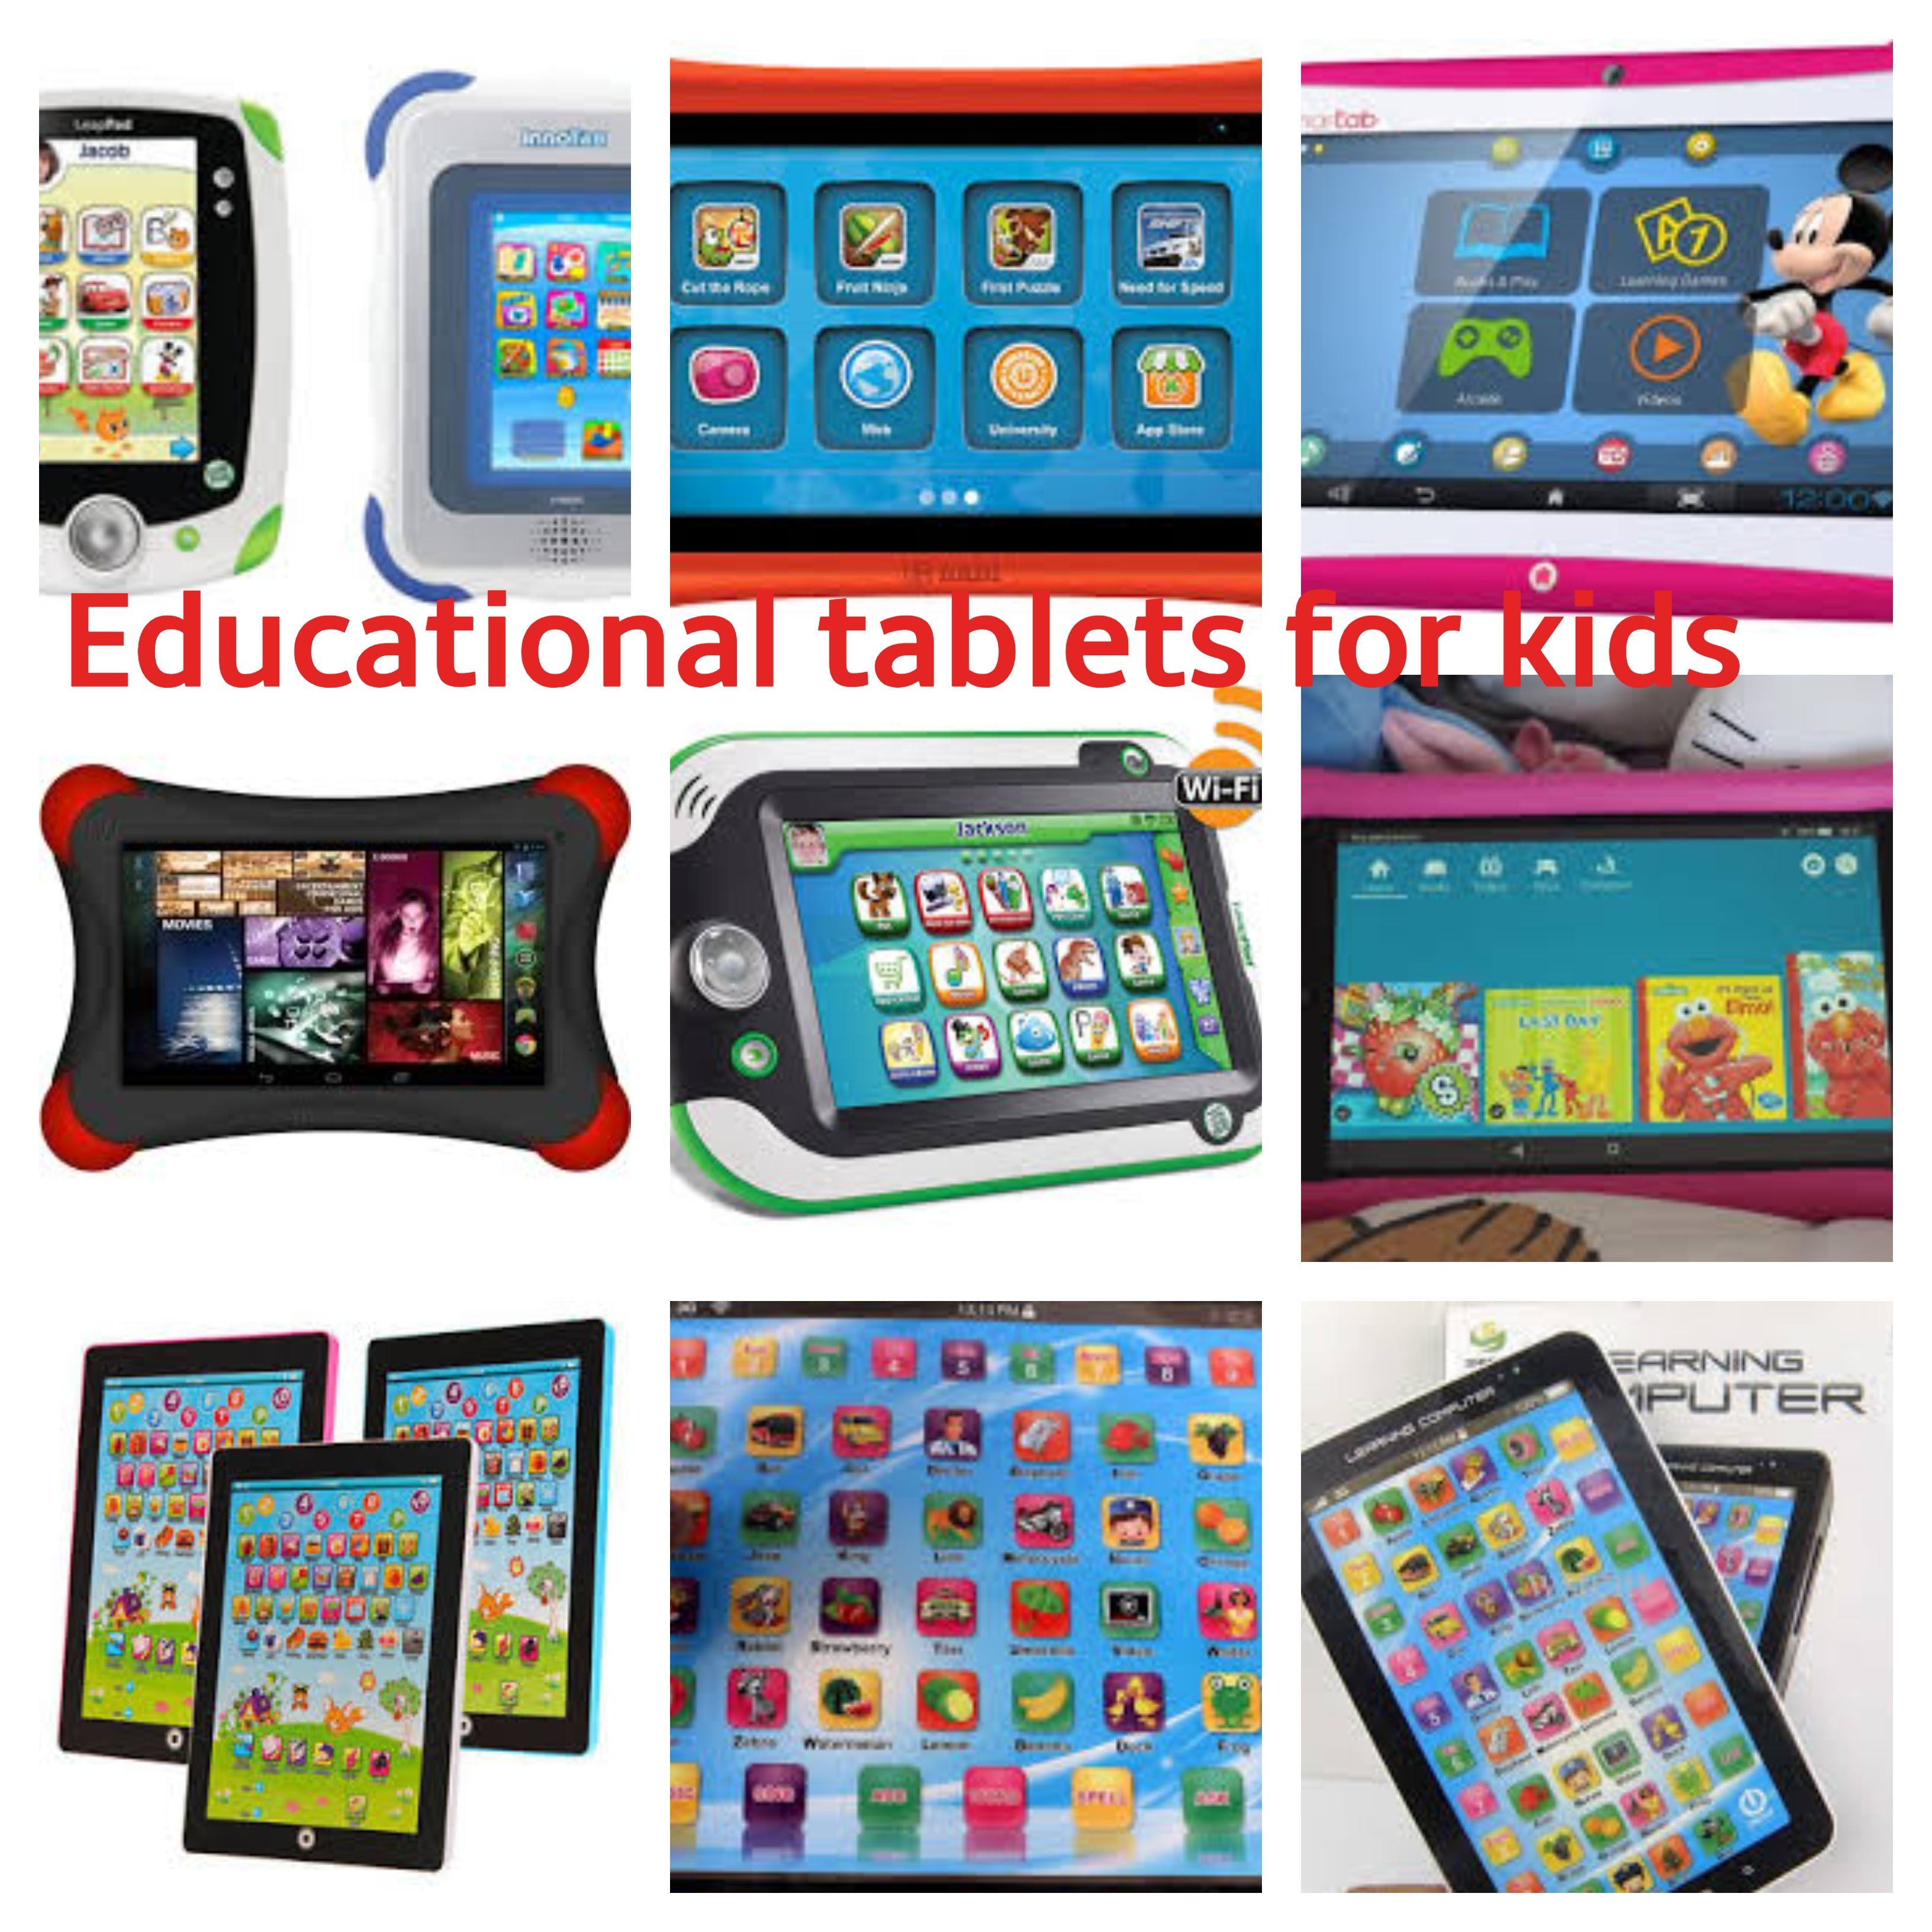 Best Kids Tablet 2021 Today we are going to share the Educational tablets for kids in